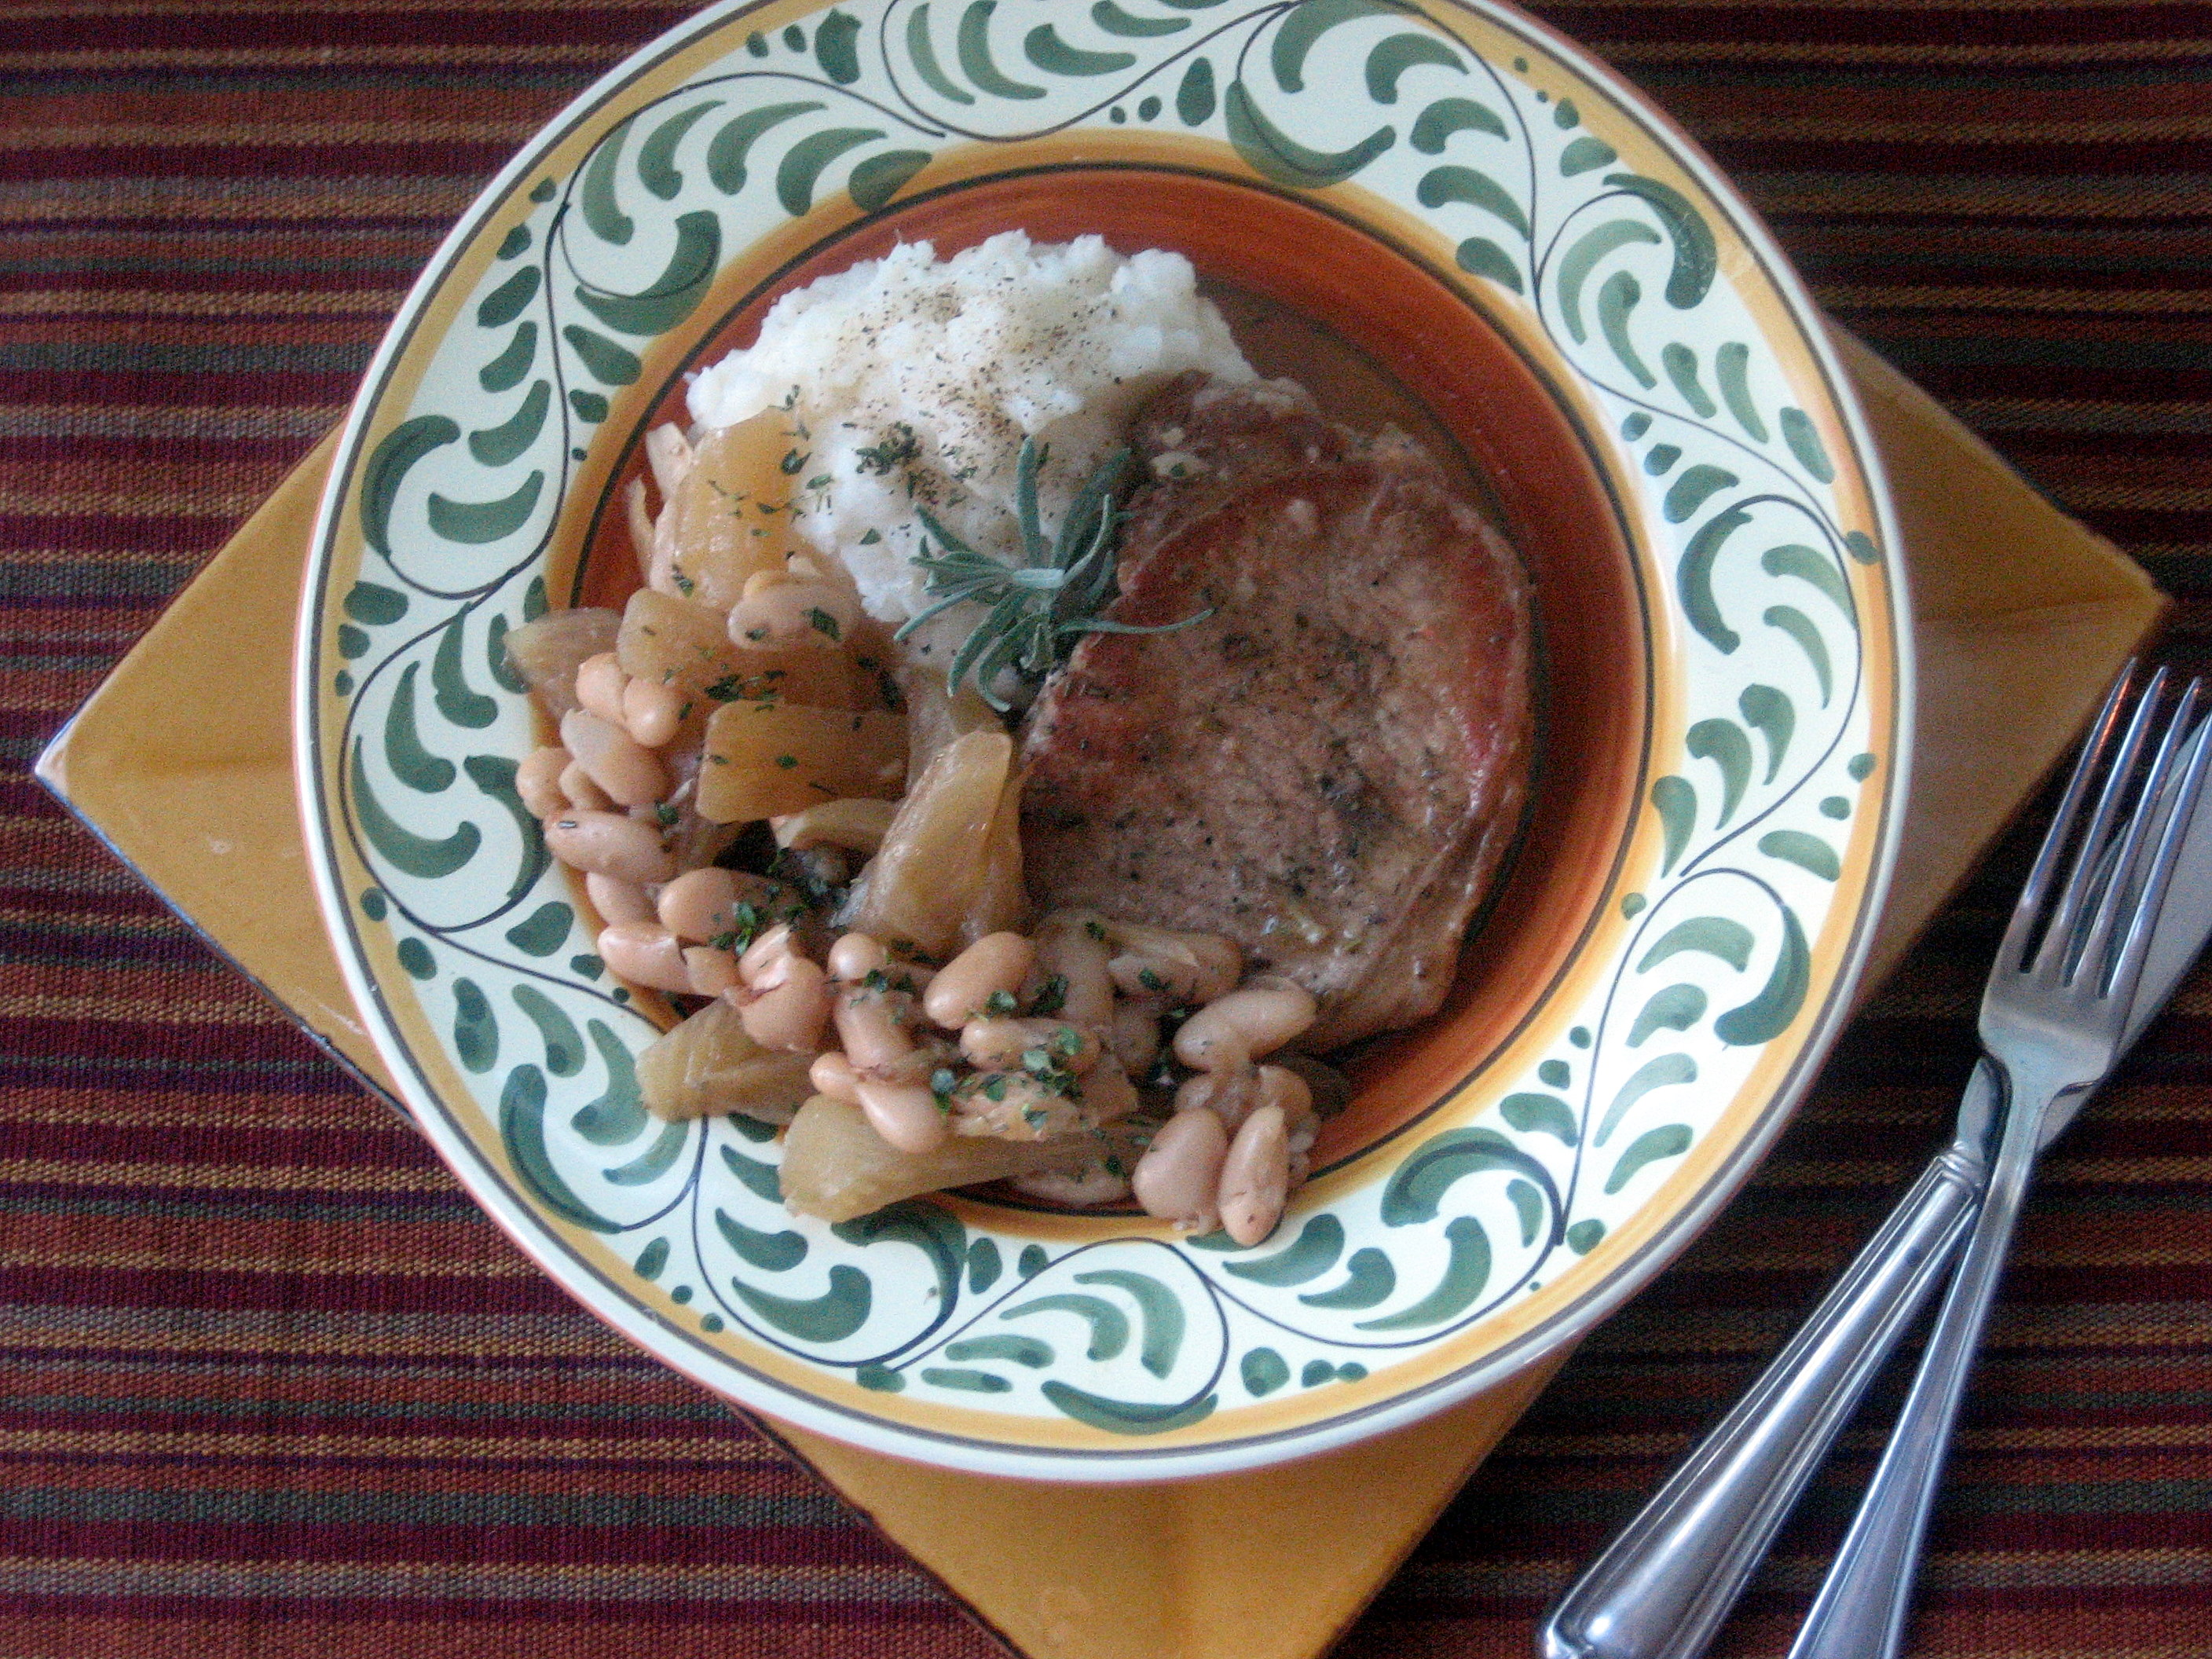 Braised Pork Chops with Fennel and White Beans | Betty Rosbottom